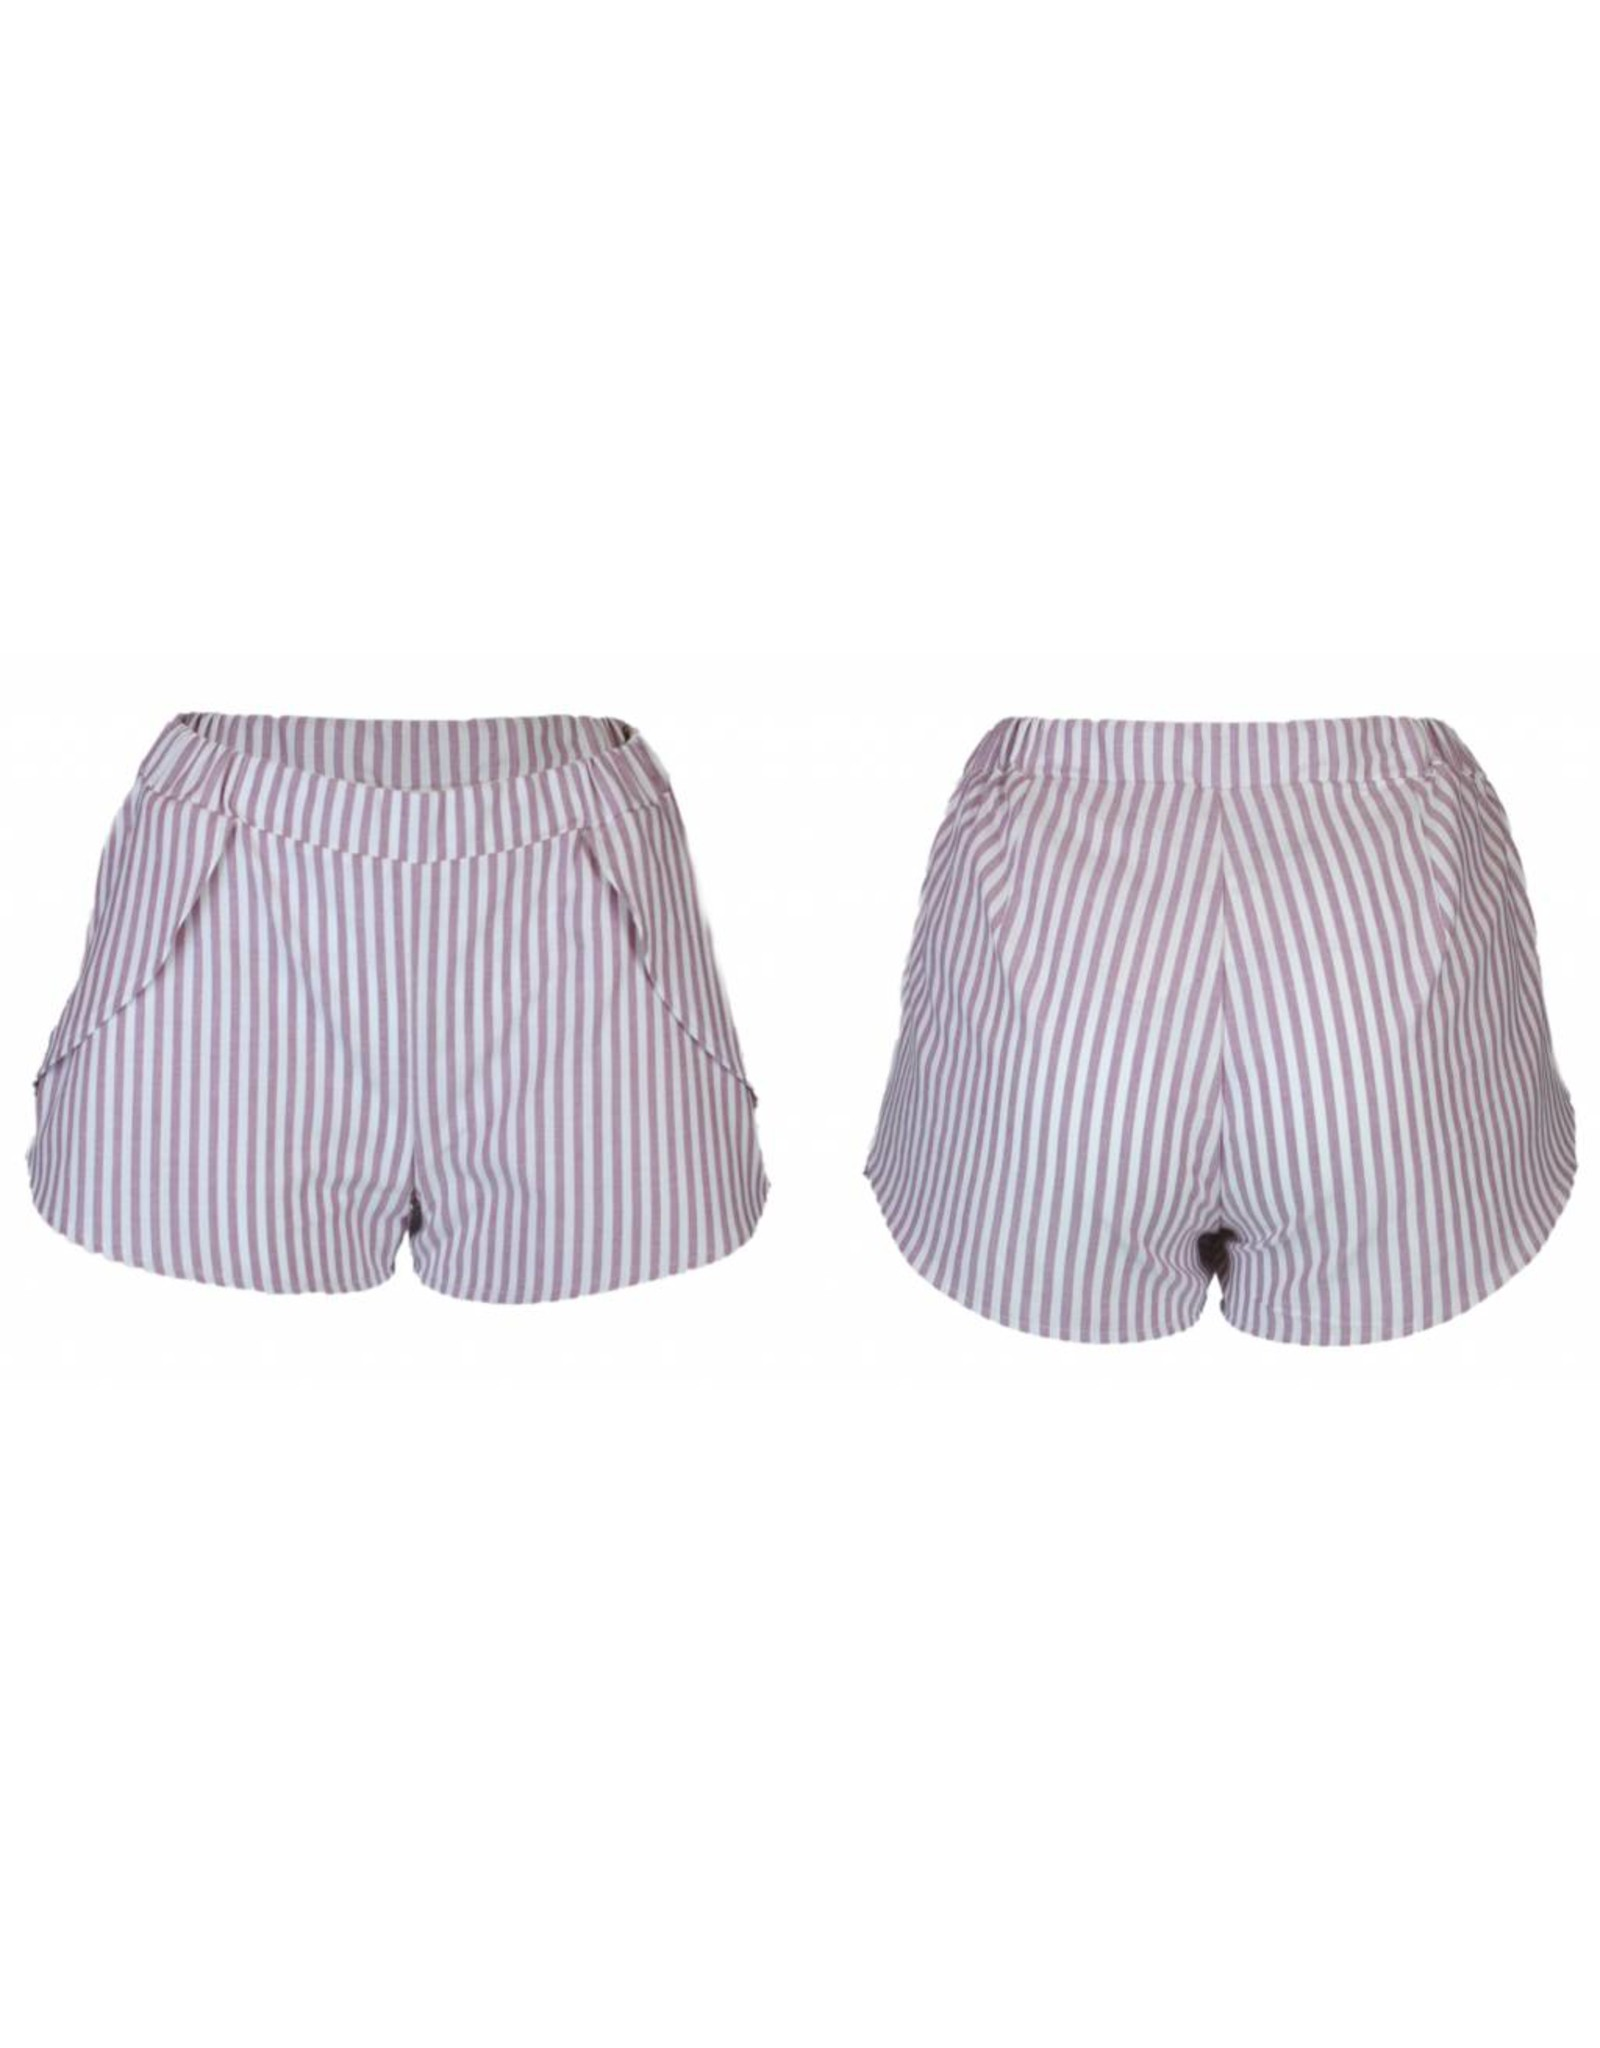 format ARON shorts, stripes